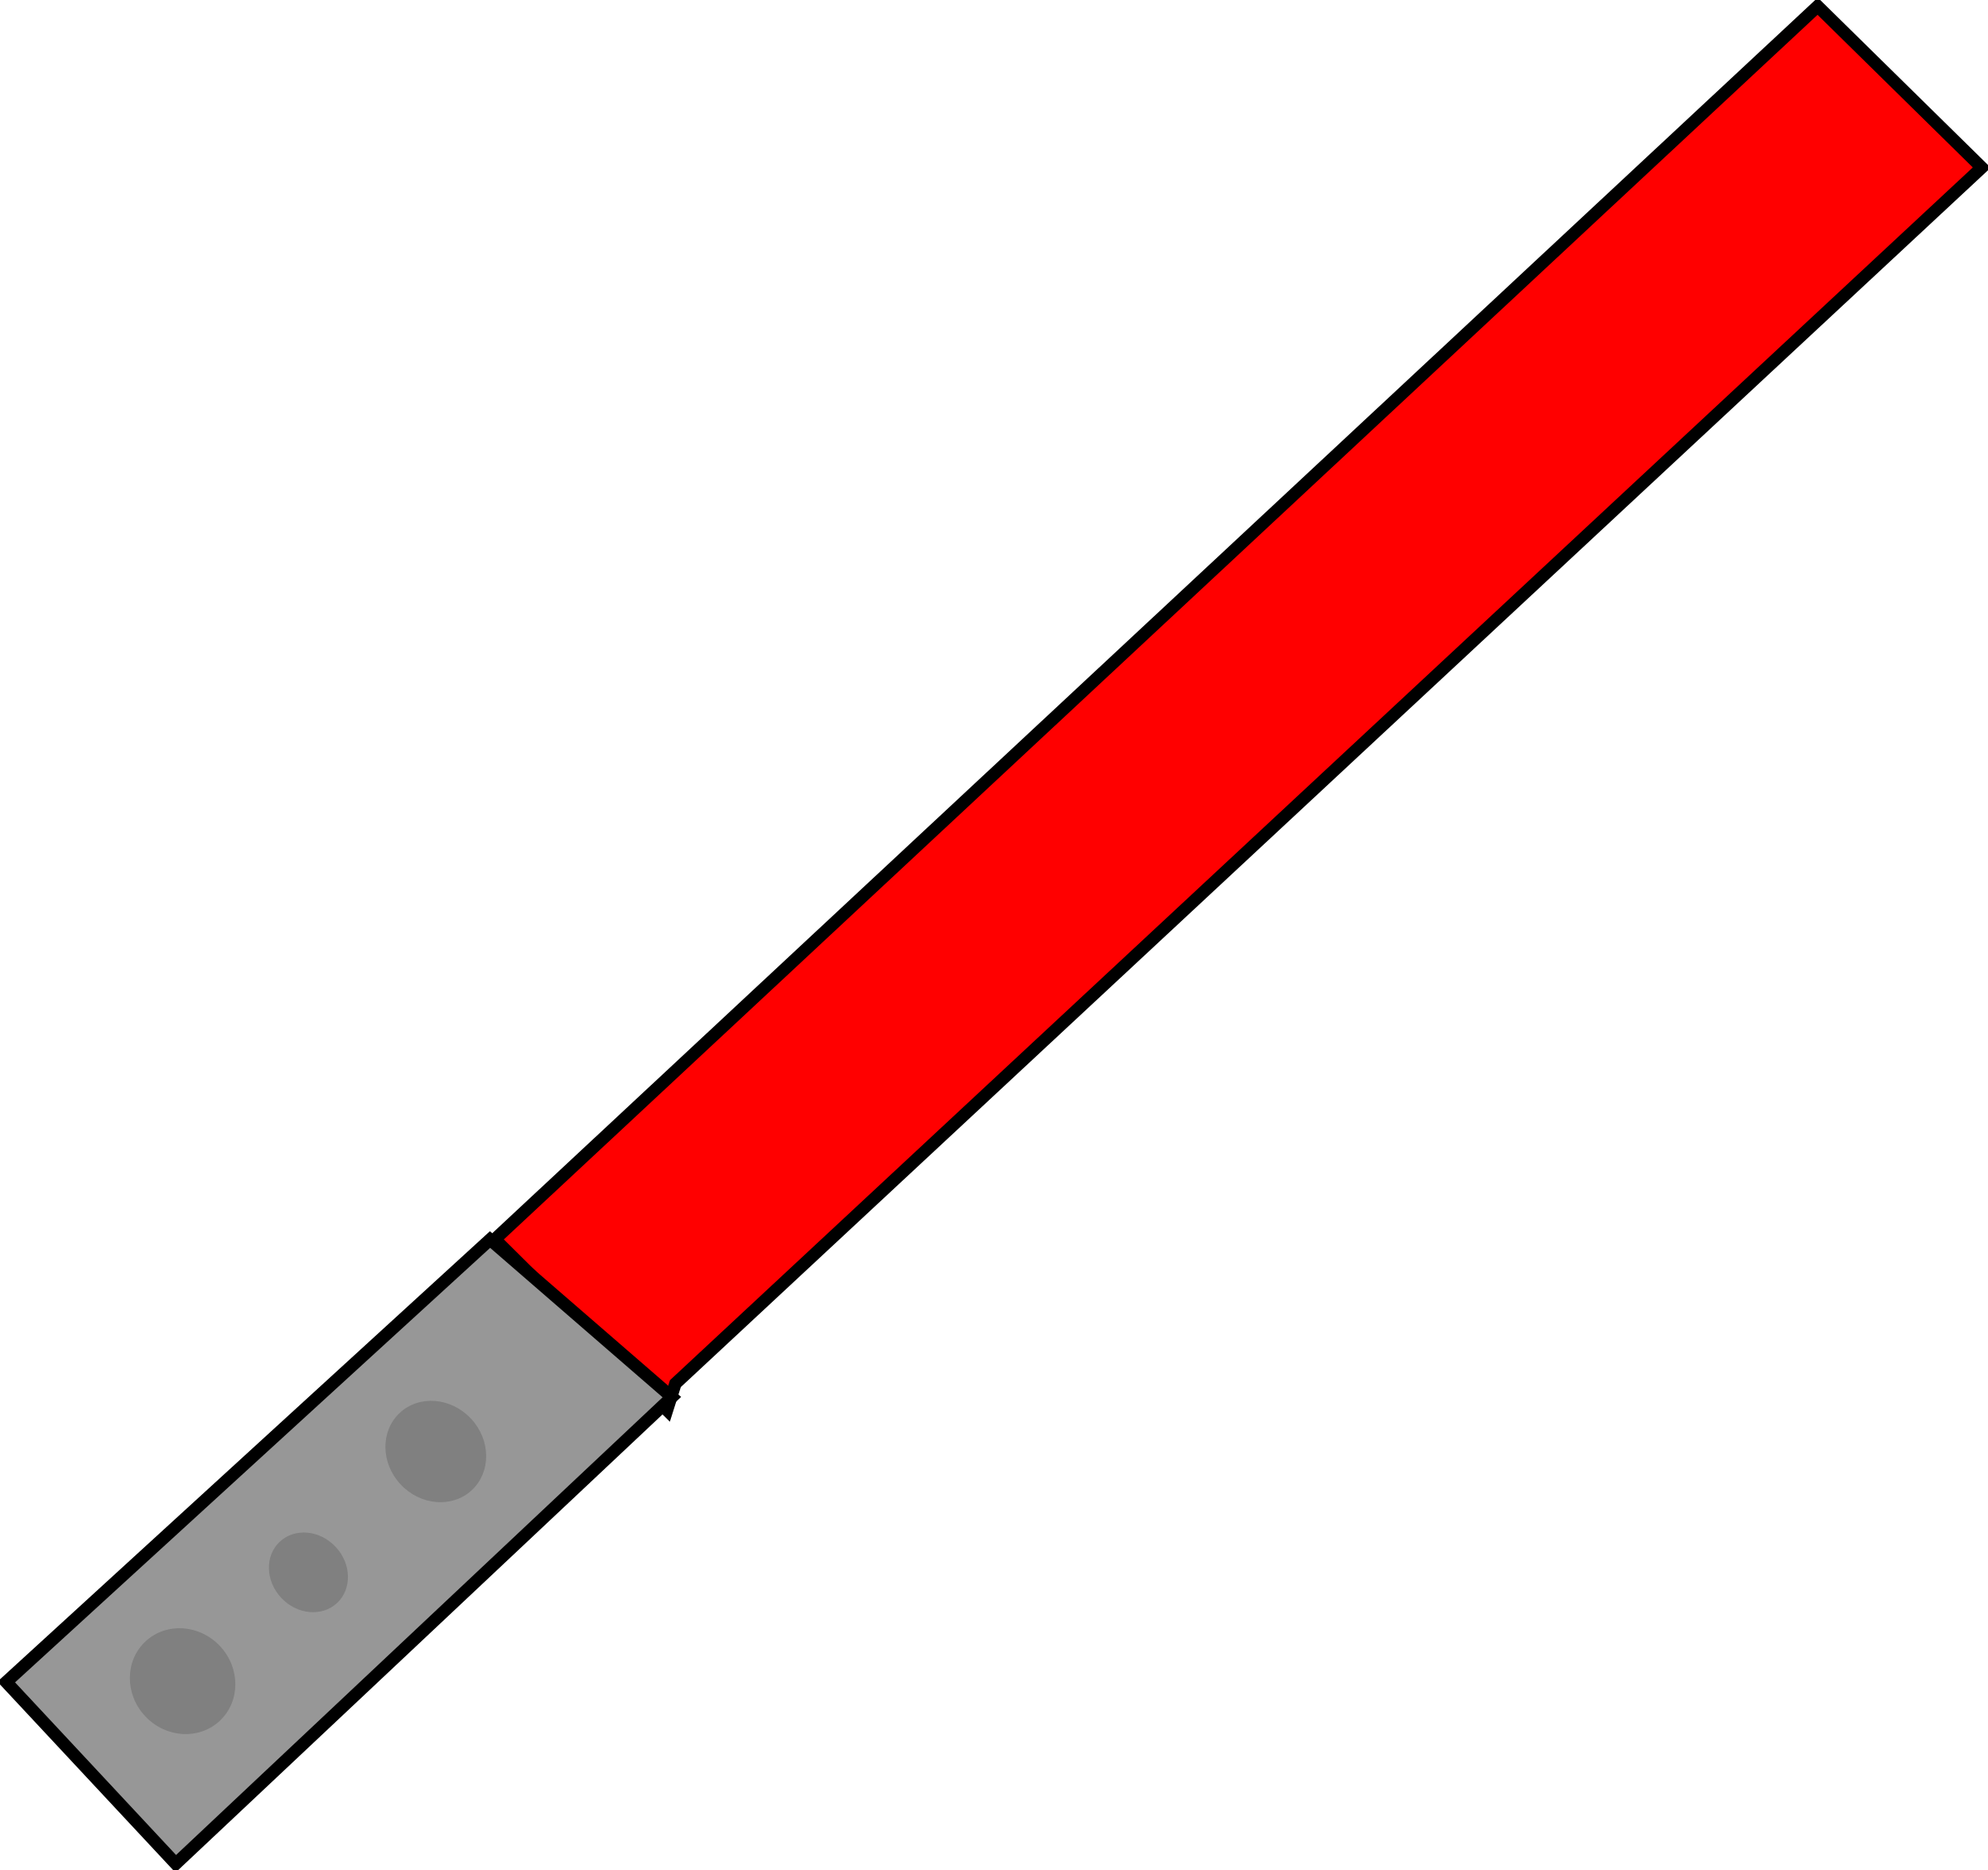 Red Light Saber by ninja246810